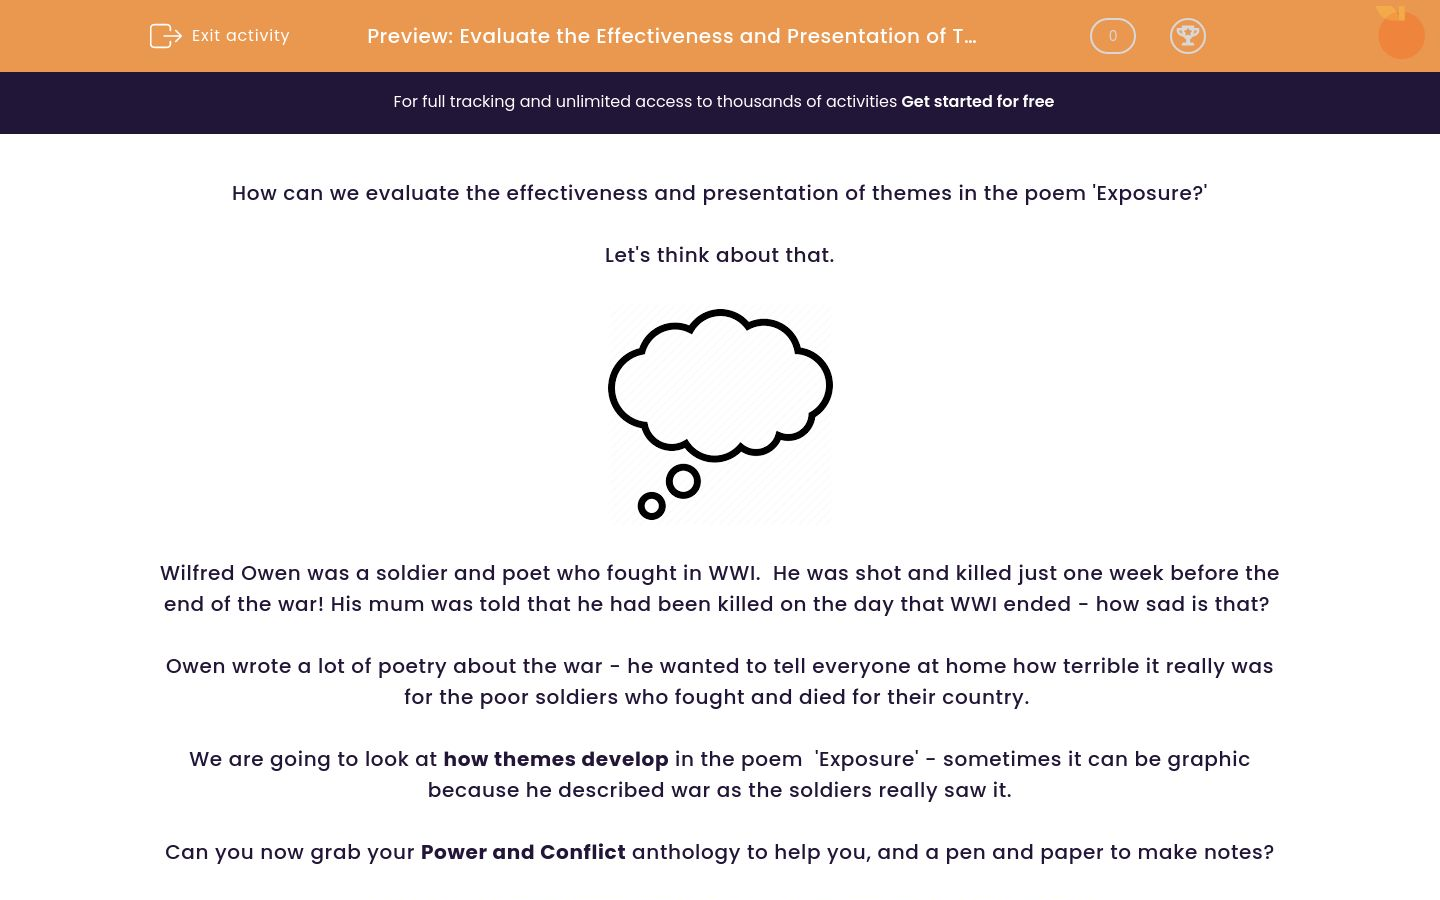 'Evaluate the Effectiveness and Presentation of Themes in the Poem 'Exposure' by Wilfred Owen' worksheet